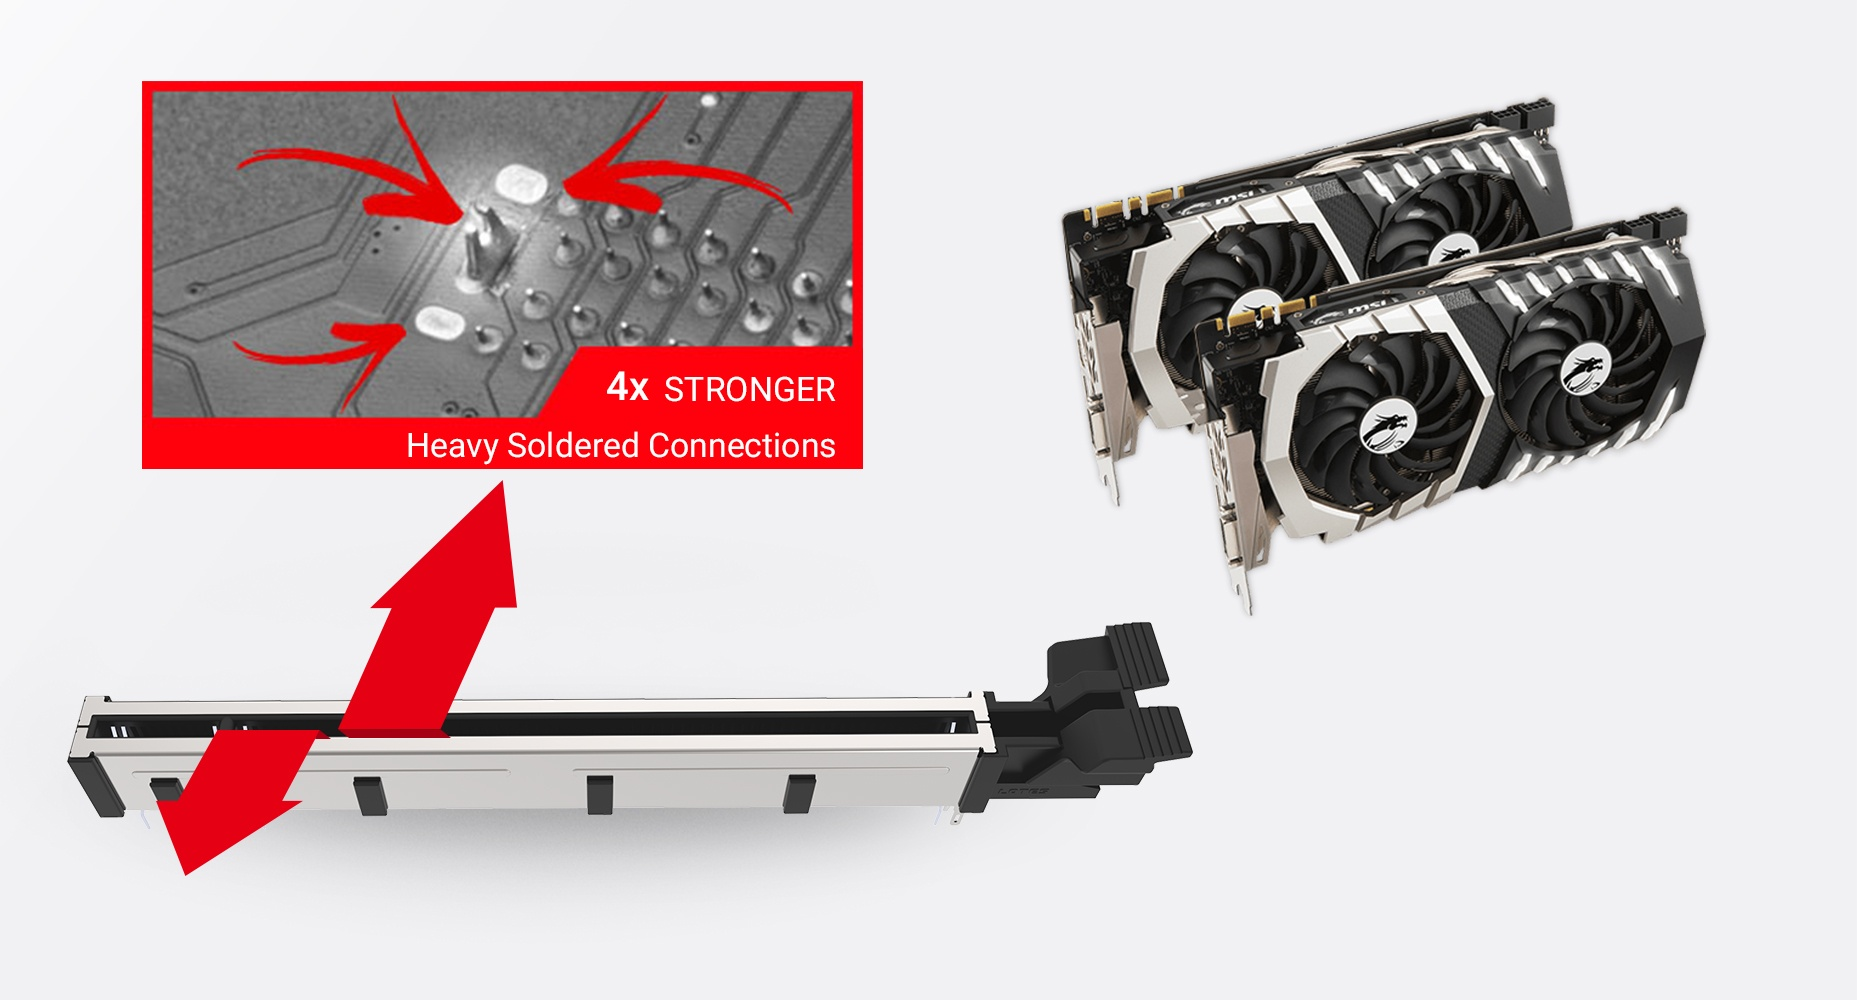 MSI MAG B460M MORTAR MULTIPLE GPU SUPPORTS AND STEEL ARMOR